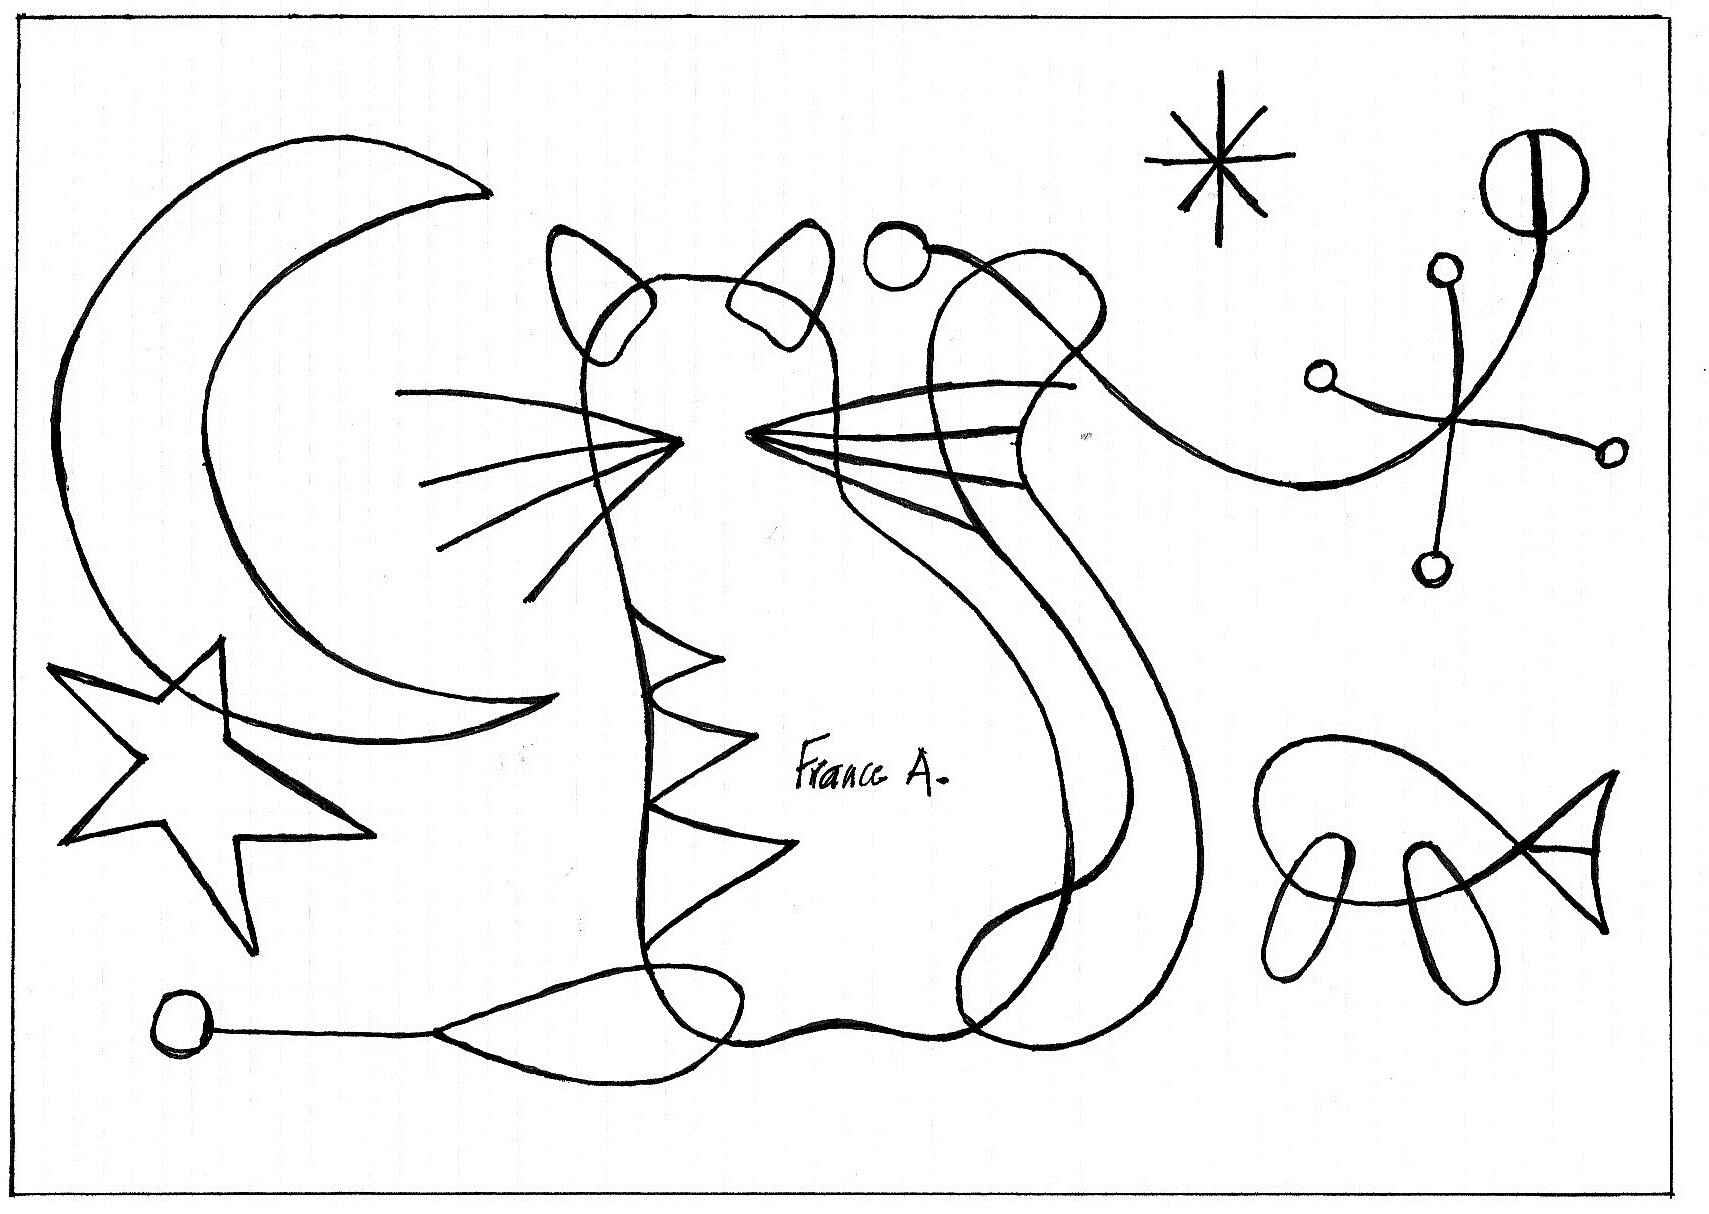 miro people and dog in the sun coloring page and lesson 60a